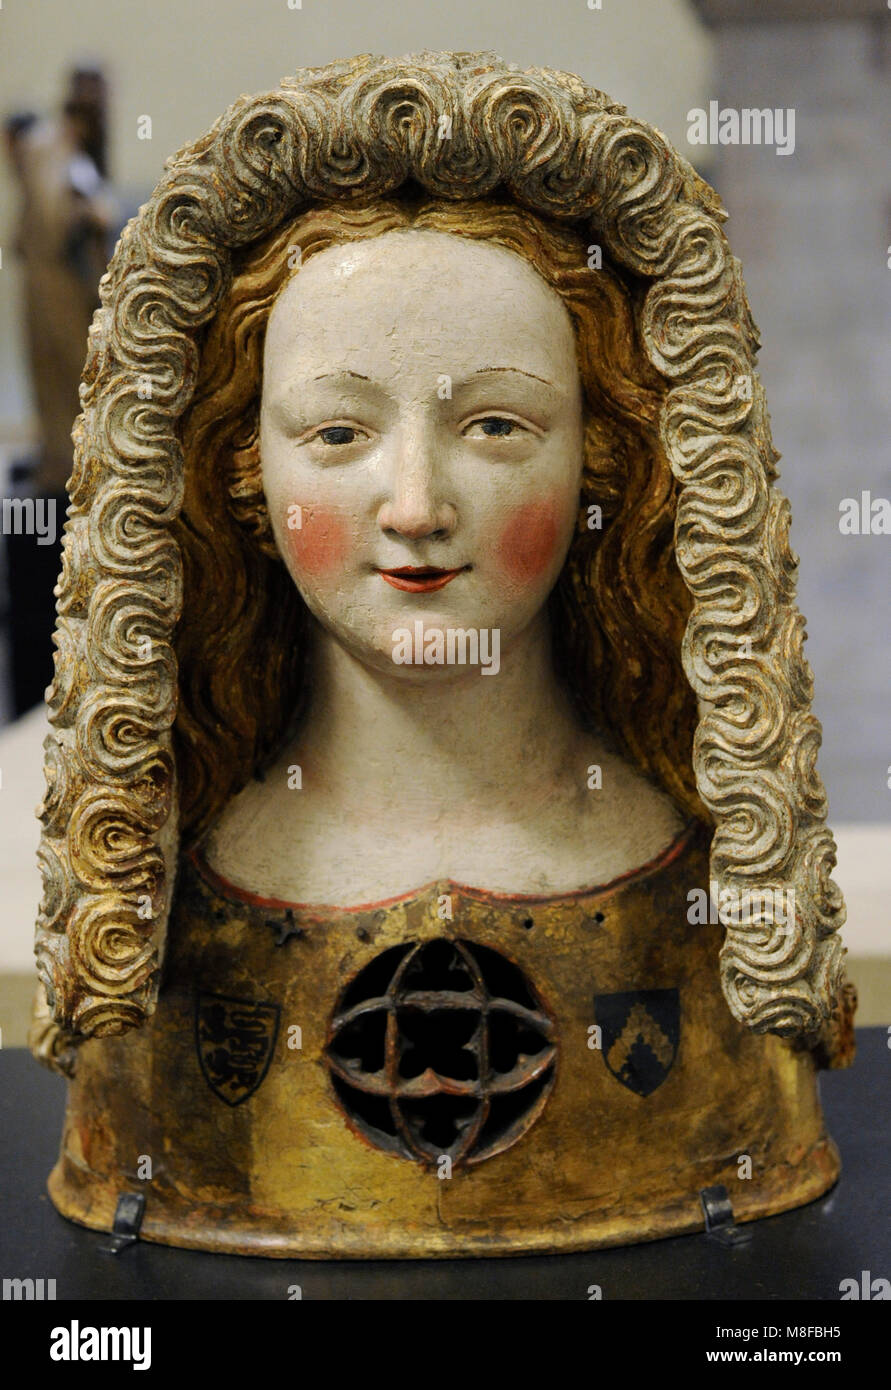 Reliquary bust with a Kruseler veil, c. 1350. Cologne. Walnut, polychrome. Schnütgen Museum. Cologne. Germany. - Stock Image